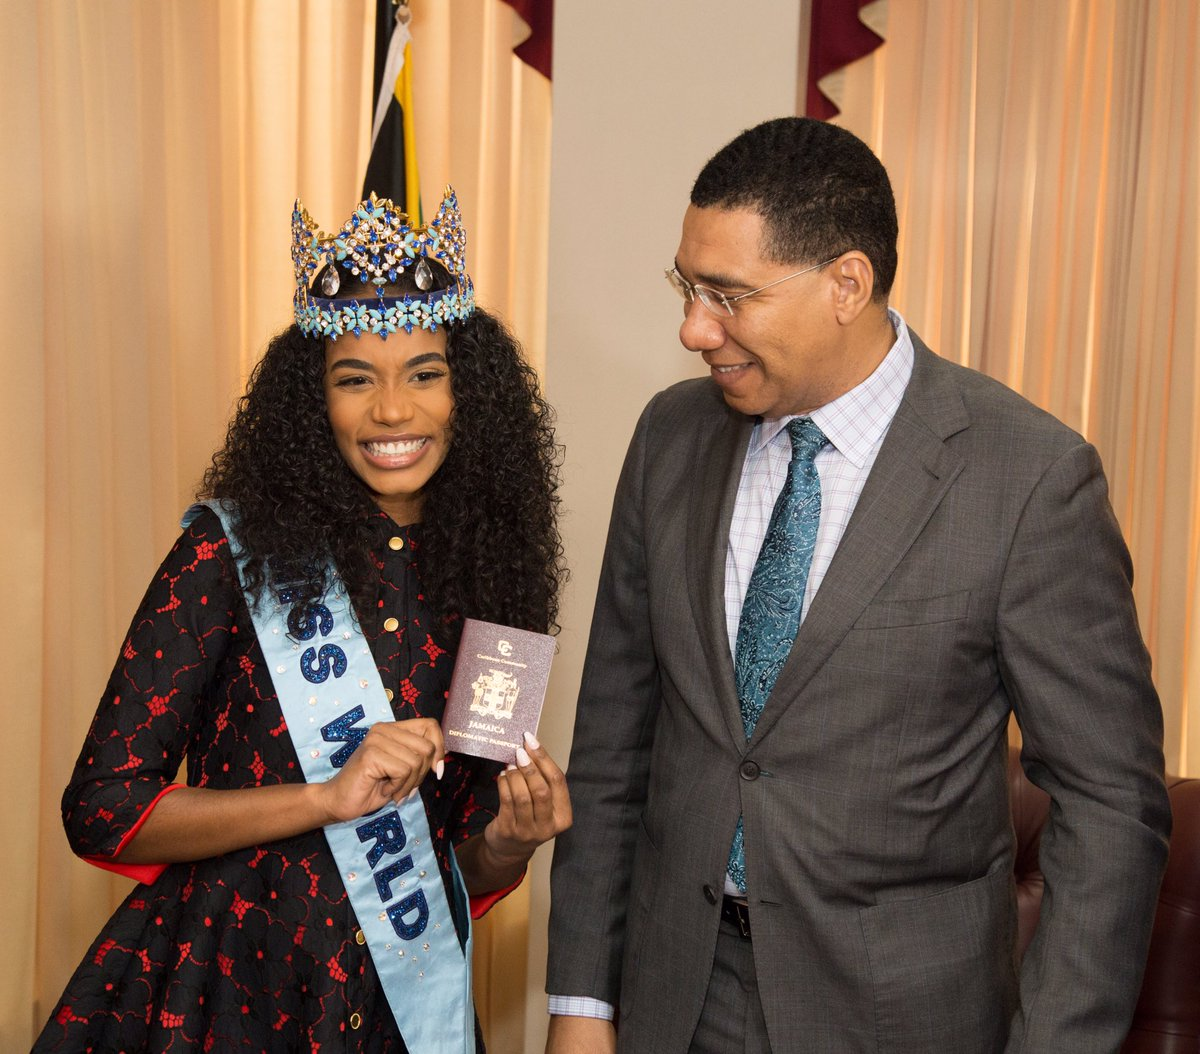 Official Thread of Miss World 2019 ® Toni-Ann Singh - JAMAICA - Page 2 EMfQGxNXsAE4ZfR